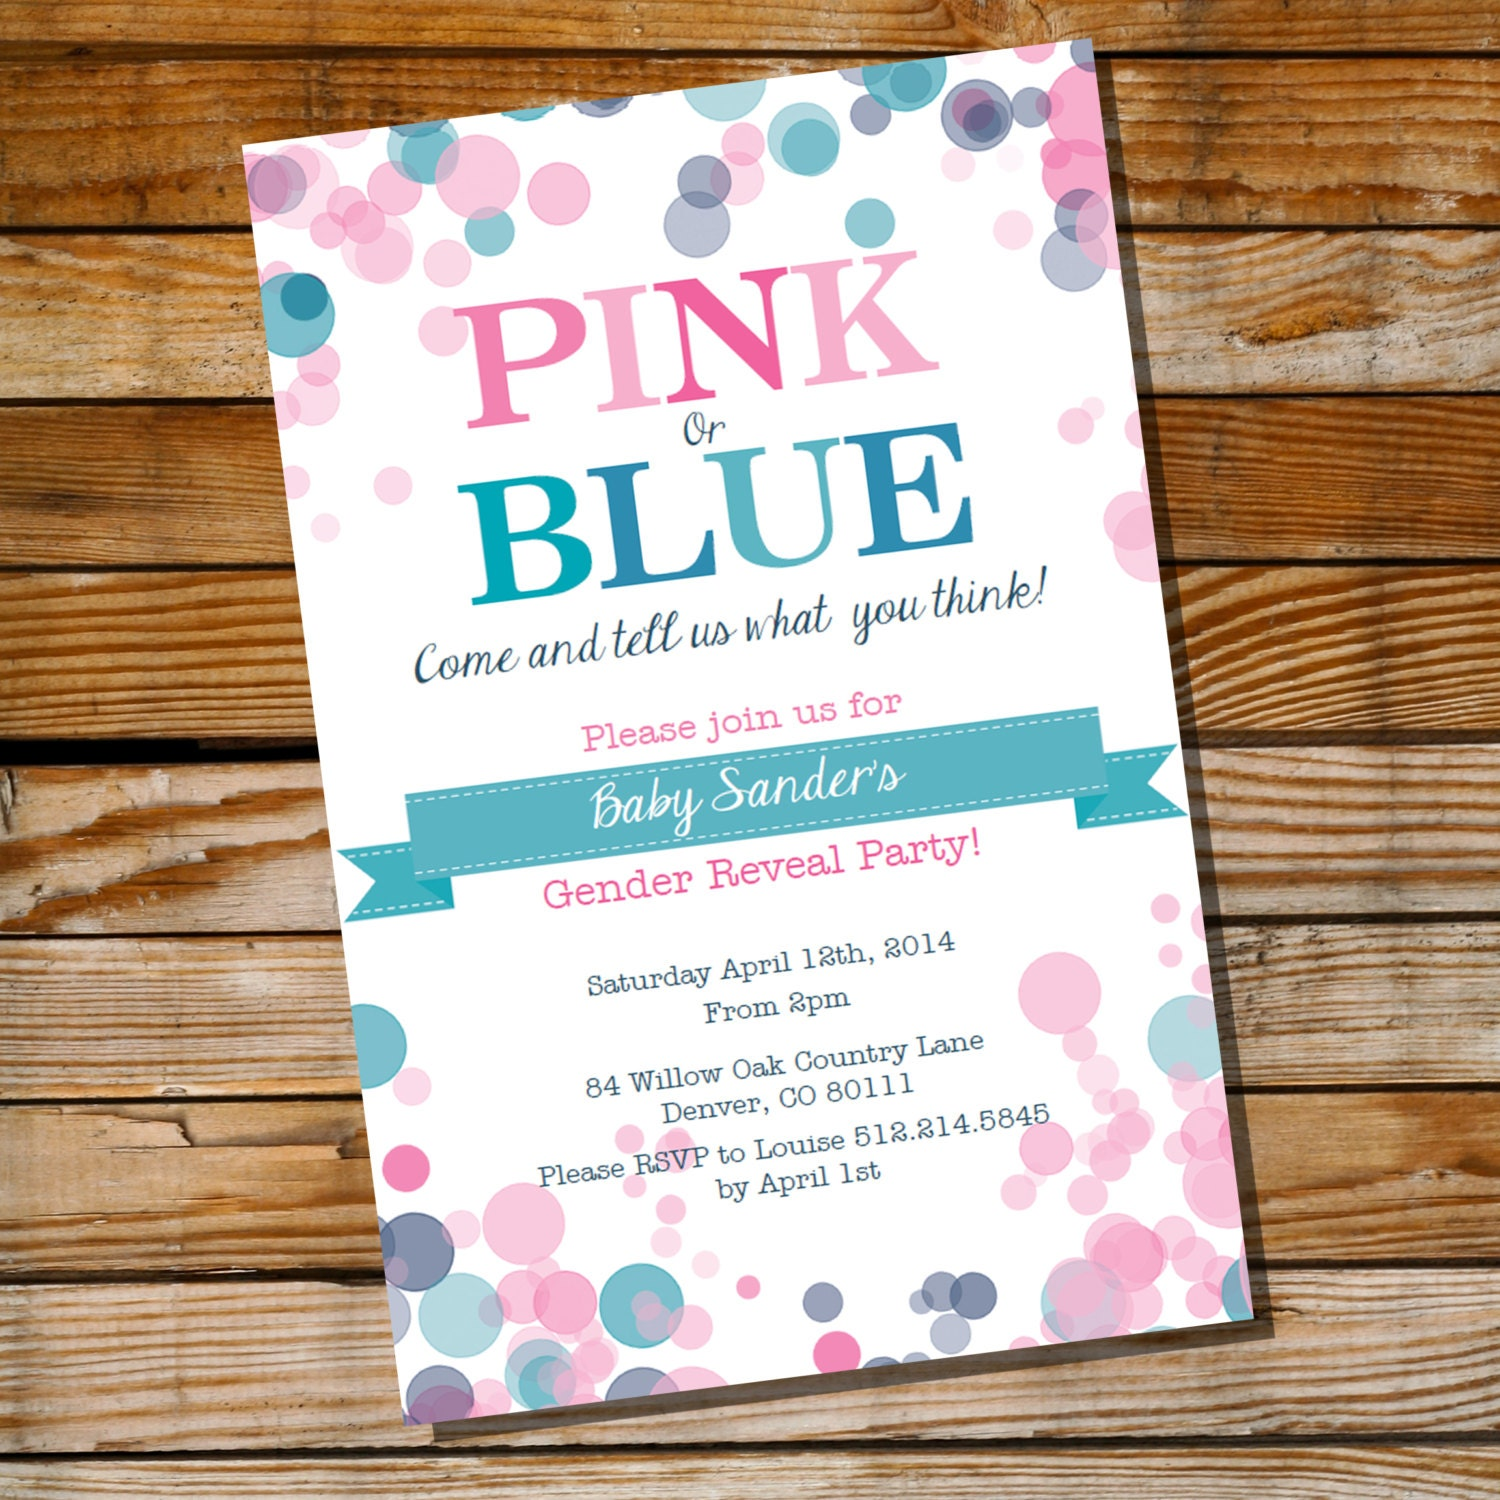 Baby Shower Reveal Party: Gender Reveal Party Invitation Pink Or Blue Instantly